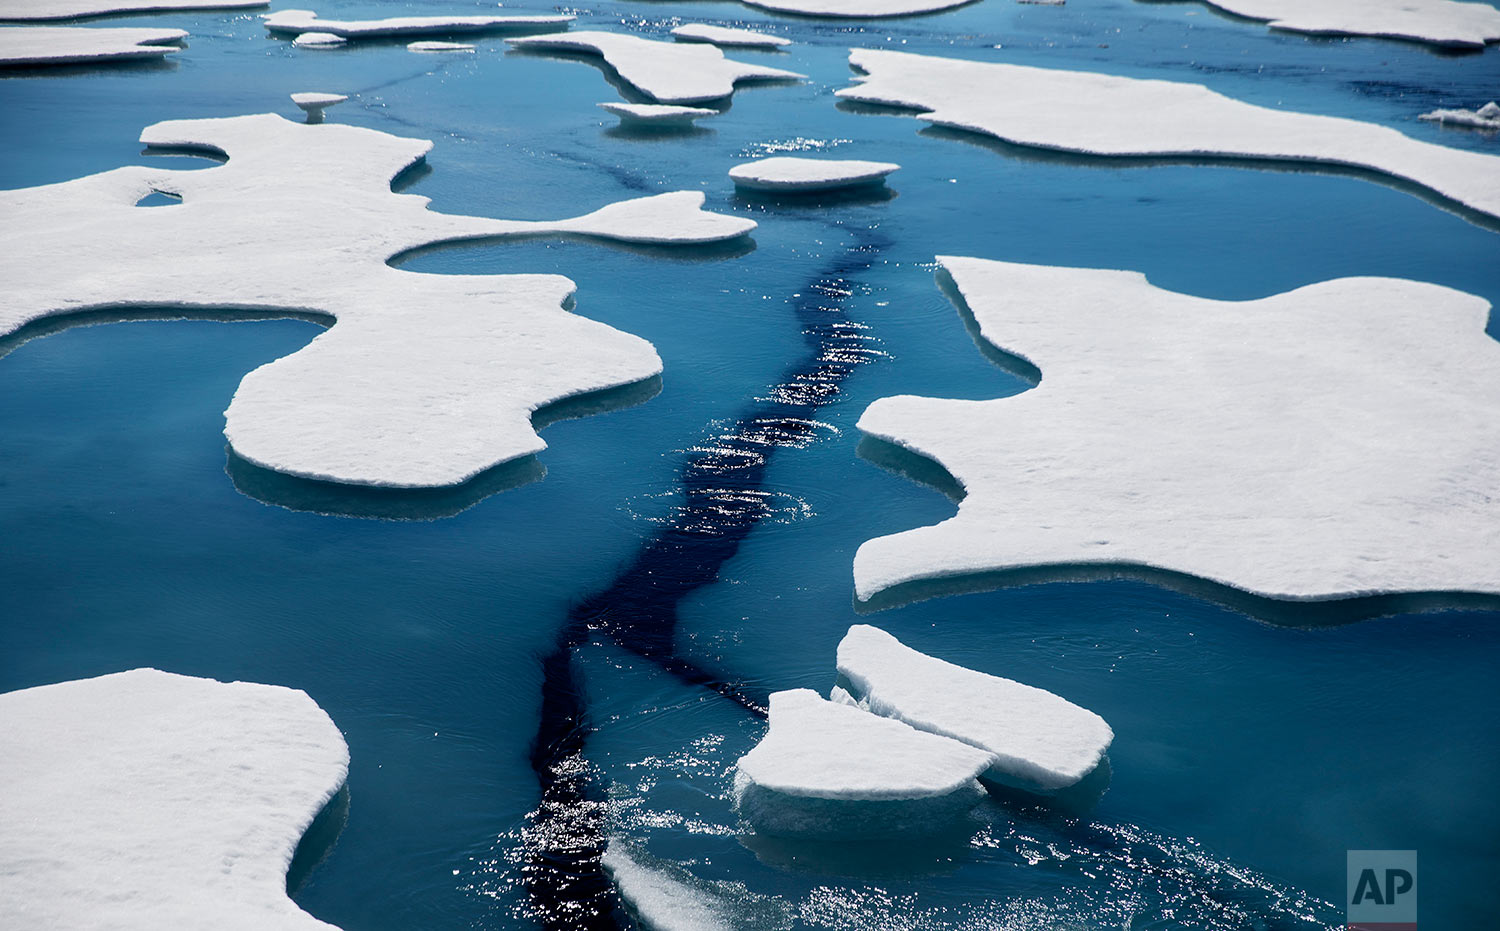 Sea ice breaks apart as the Finnish icebreaker MSV Nordica traverses the Northwest Passage through the Victoria Strait in the Canadian Arctic Archipelago Friday, July 21, 2017. Since the first orbital images were taken in 1979, Arctic sea ice coverage has dropped by an average of about 34,000 square miles each year _ almost the surface area of Maine or the country of Serbia. (AP Photo/David Goldman)